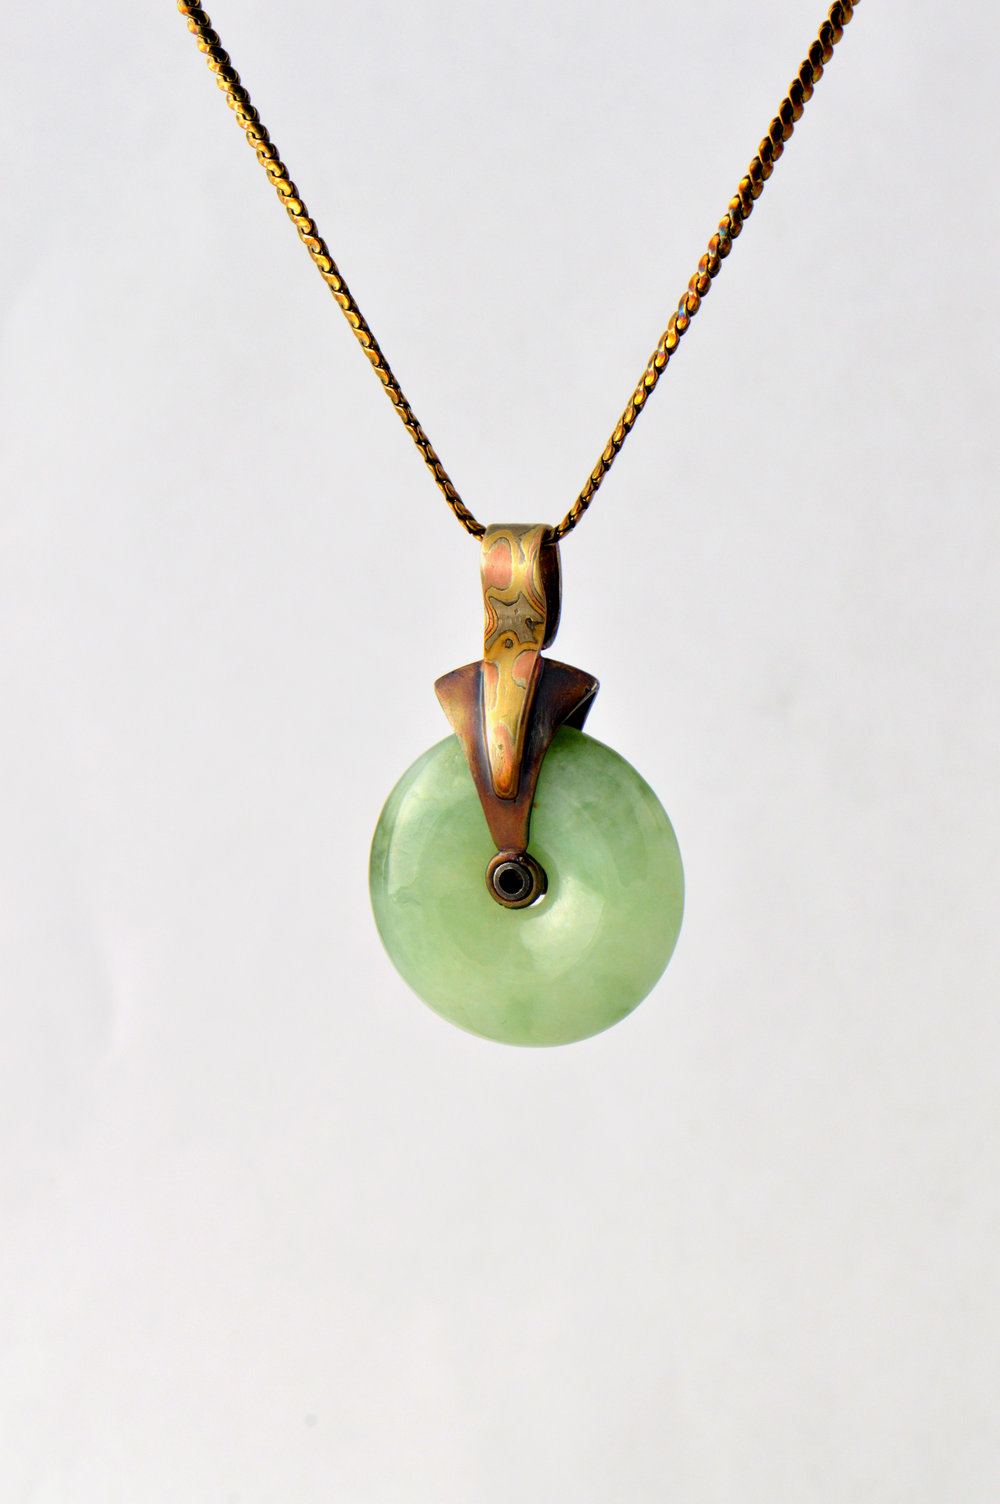 darvier-jade-mokume-pendant-with-patina.JPG